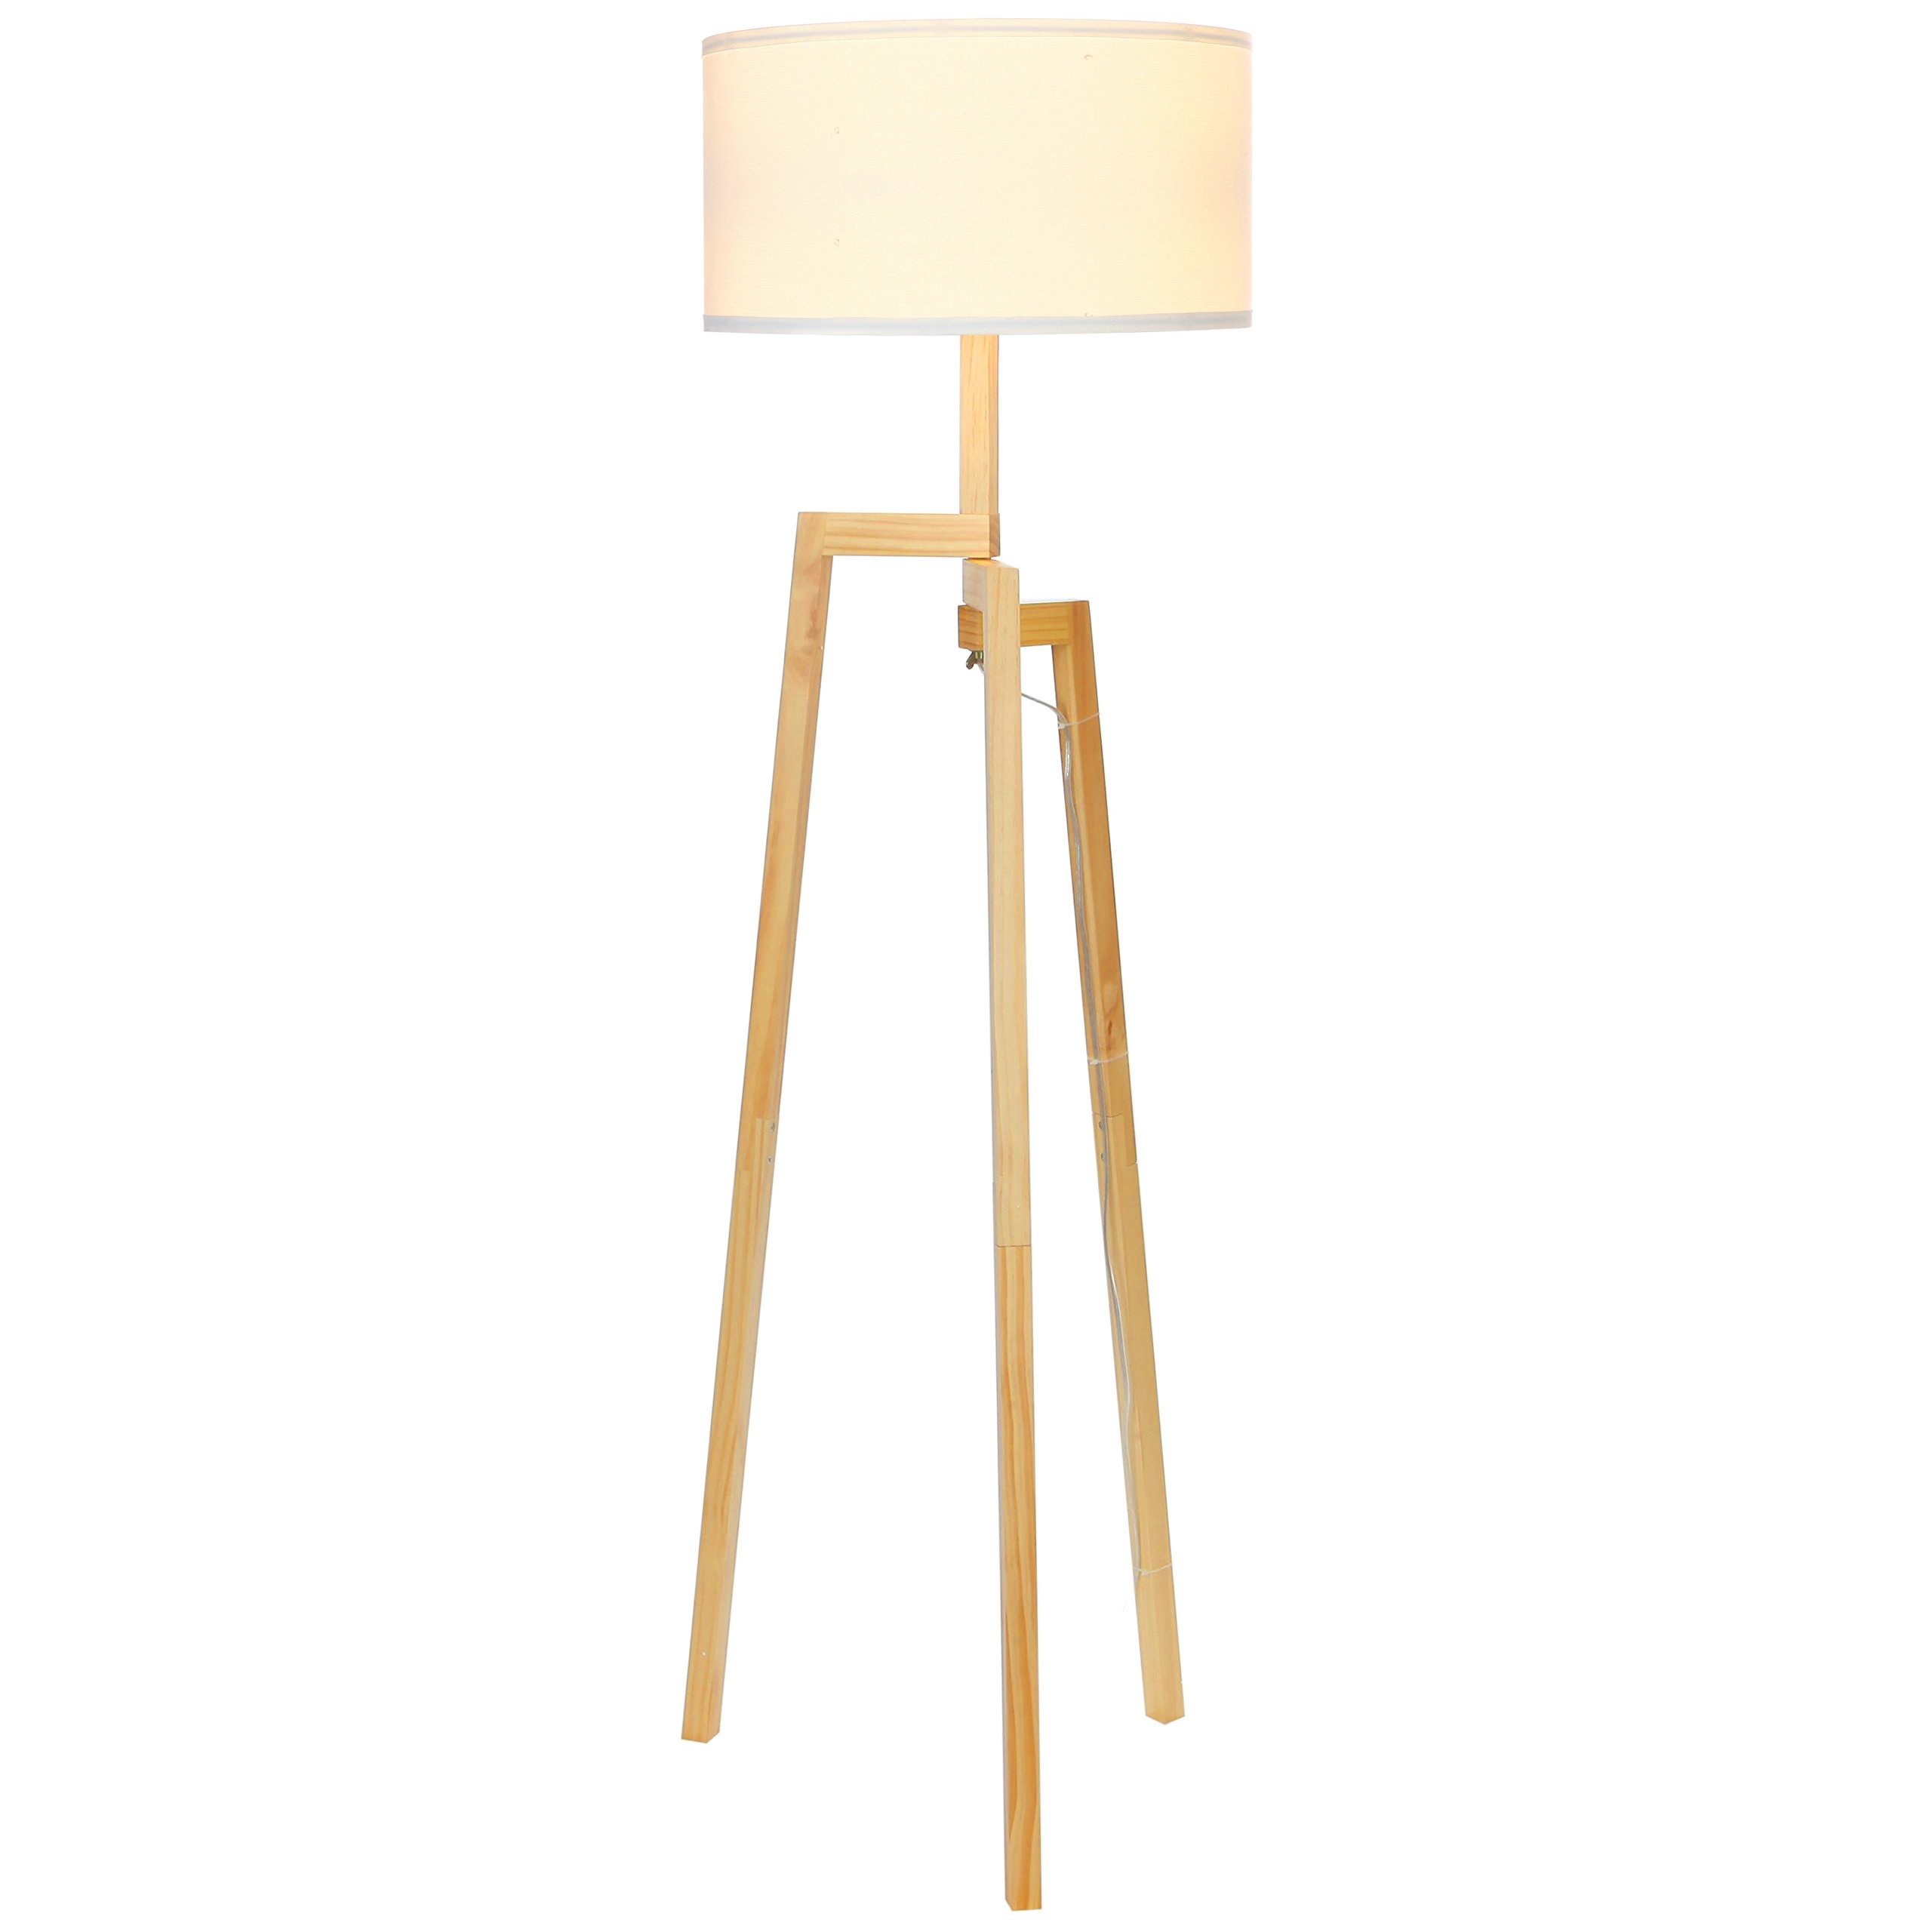 Brightech New Mia LED Tripod Floor Lamp– Modern Design Wood Mid Century Style Lighting for Contemporary Living or Family Rooms- Ambient Light Tall Standing Survey Lamp for Bedroom, Office- White Shade by Brightech (Image #2)